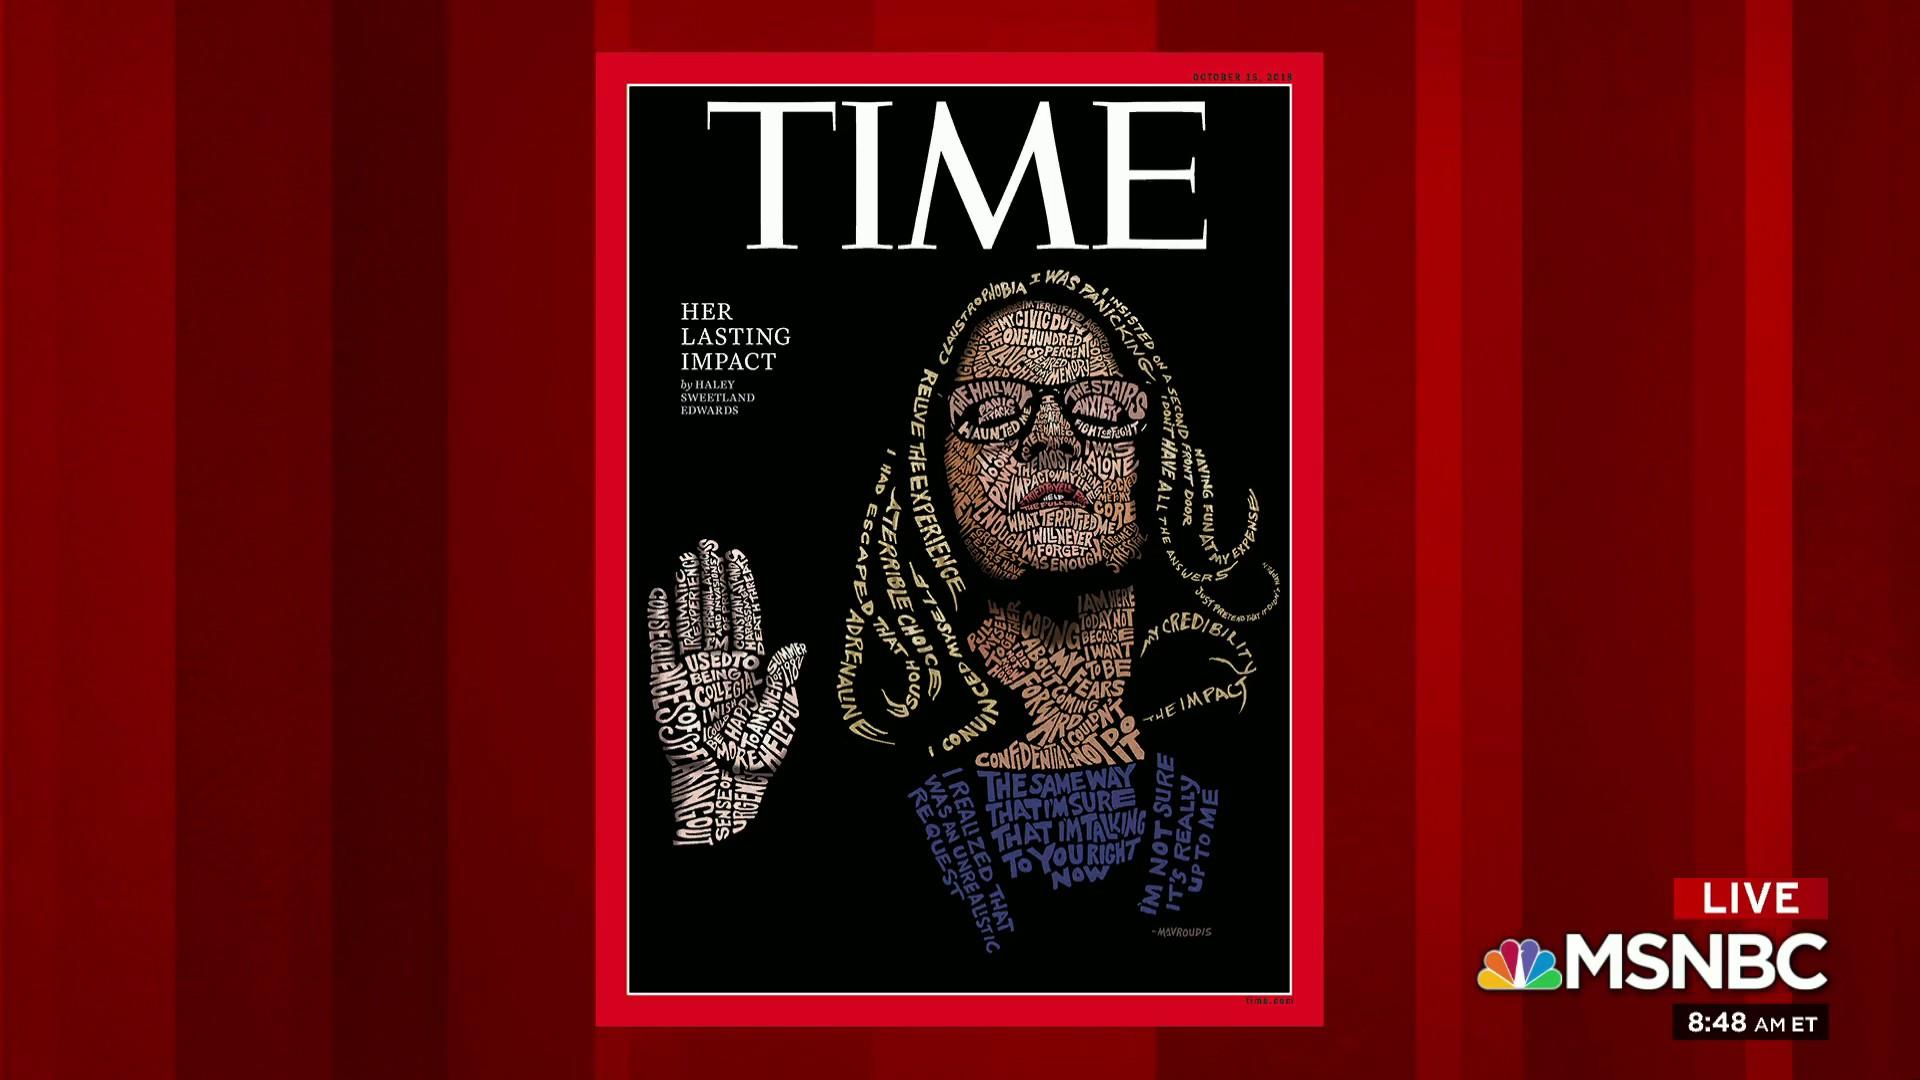 Time looks at Dr. Ford's lasting impact